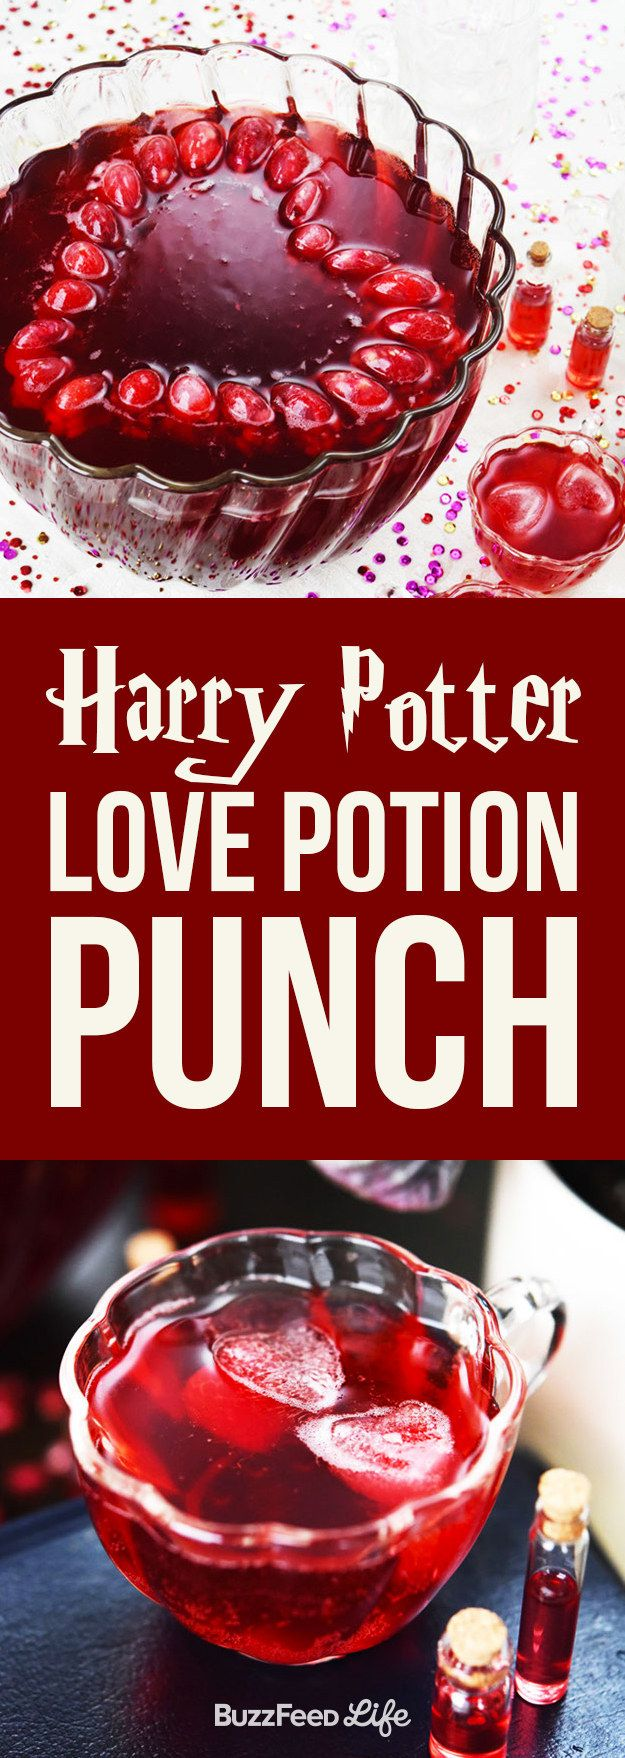 This Harry Potter Love Potion Punch Will Make Everyone Obsessed With You